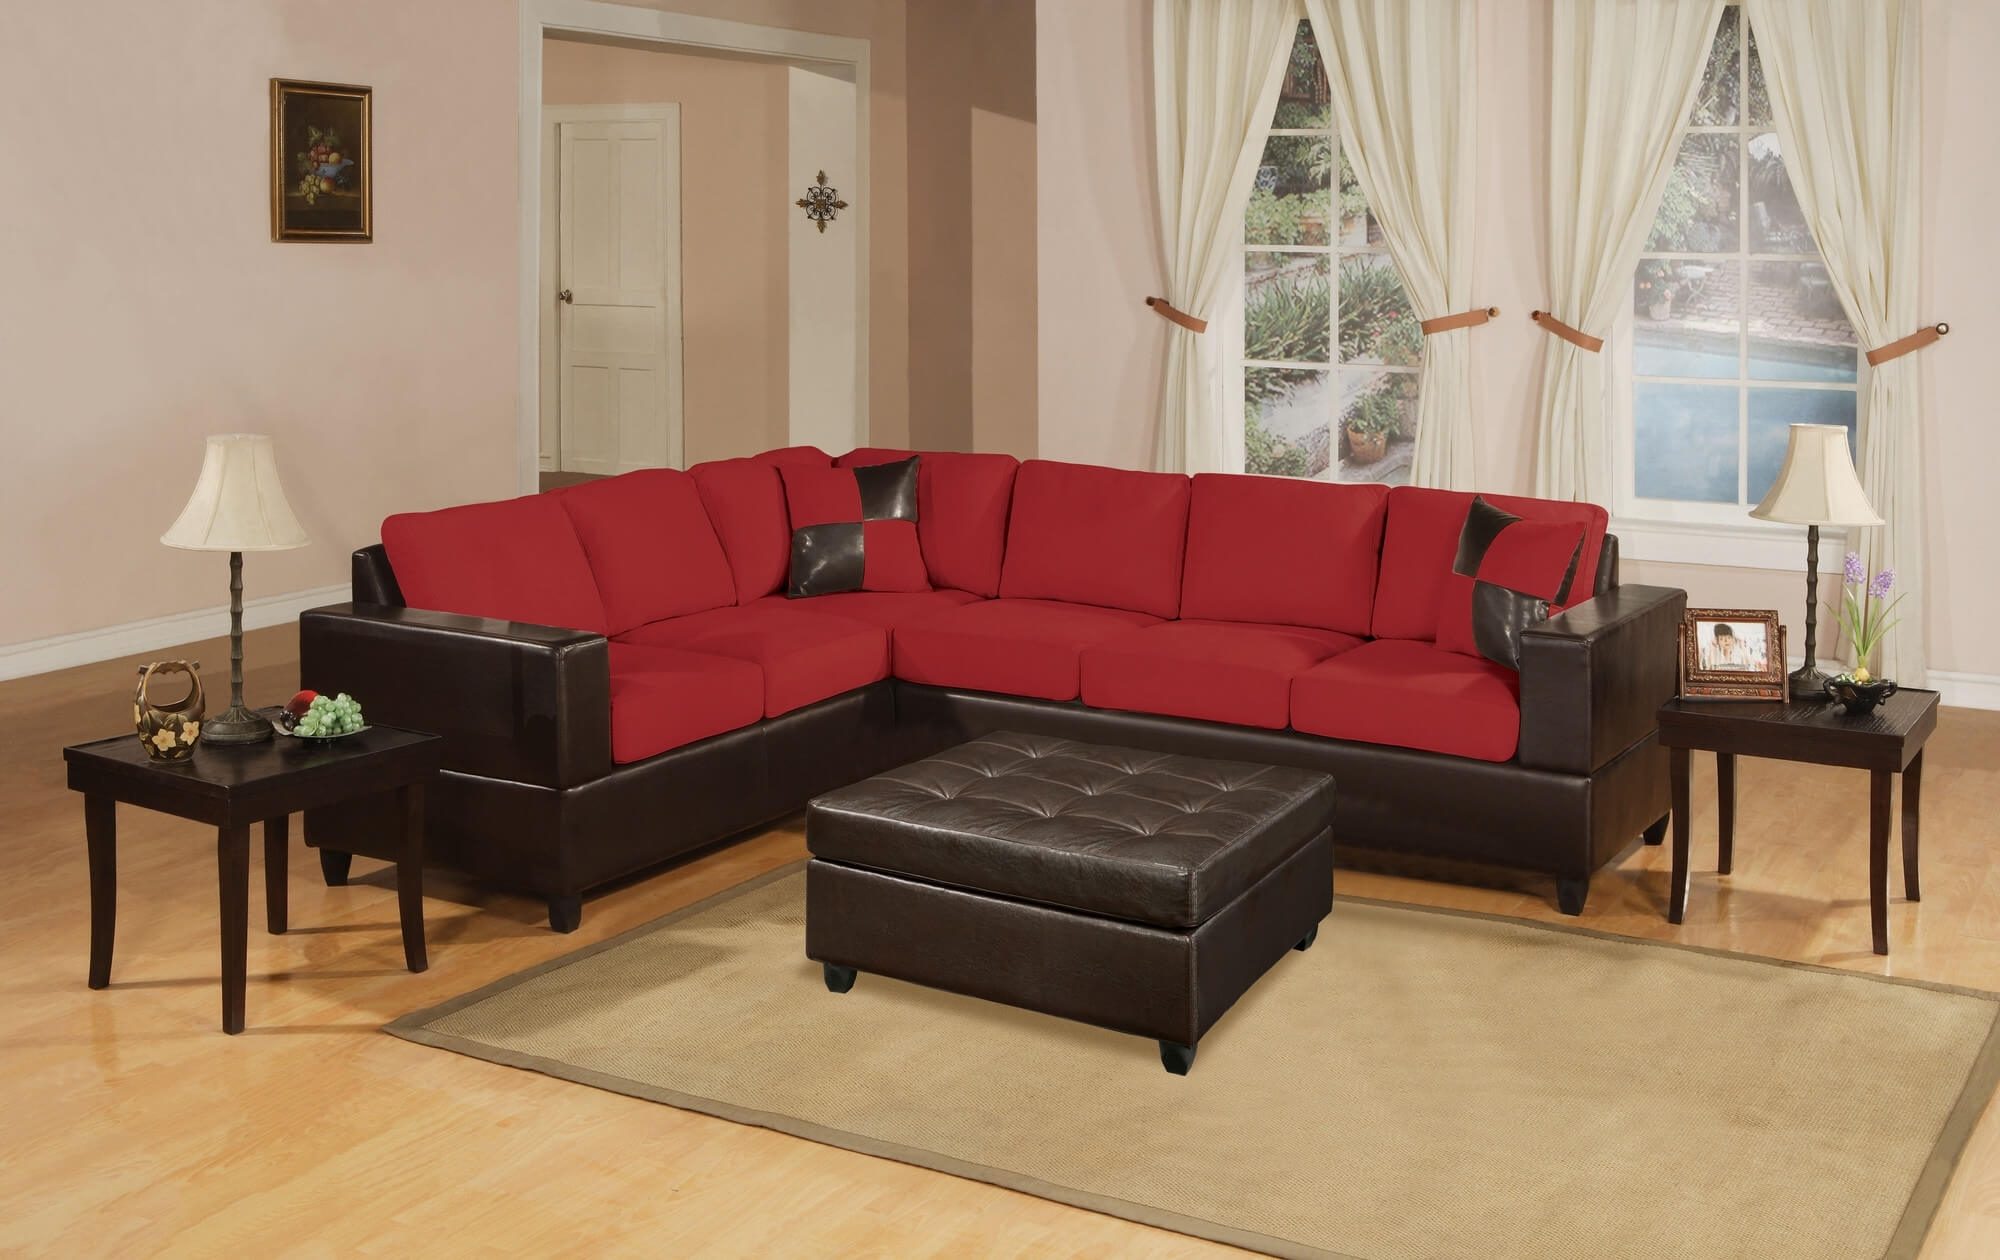 18 Stylish Modern Red Sectional Sofas intended for Red Sectional Sofas